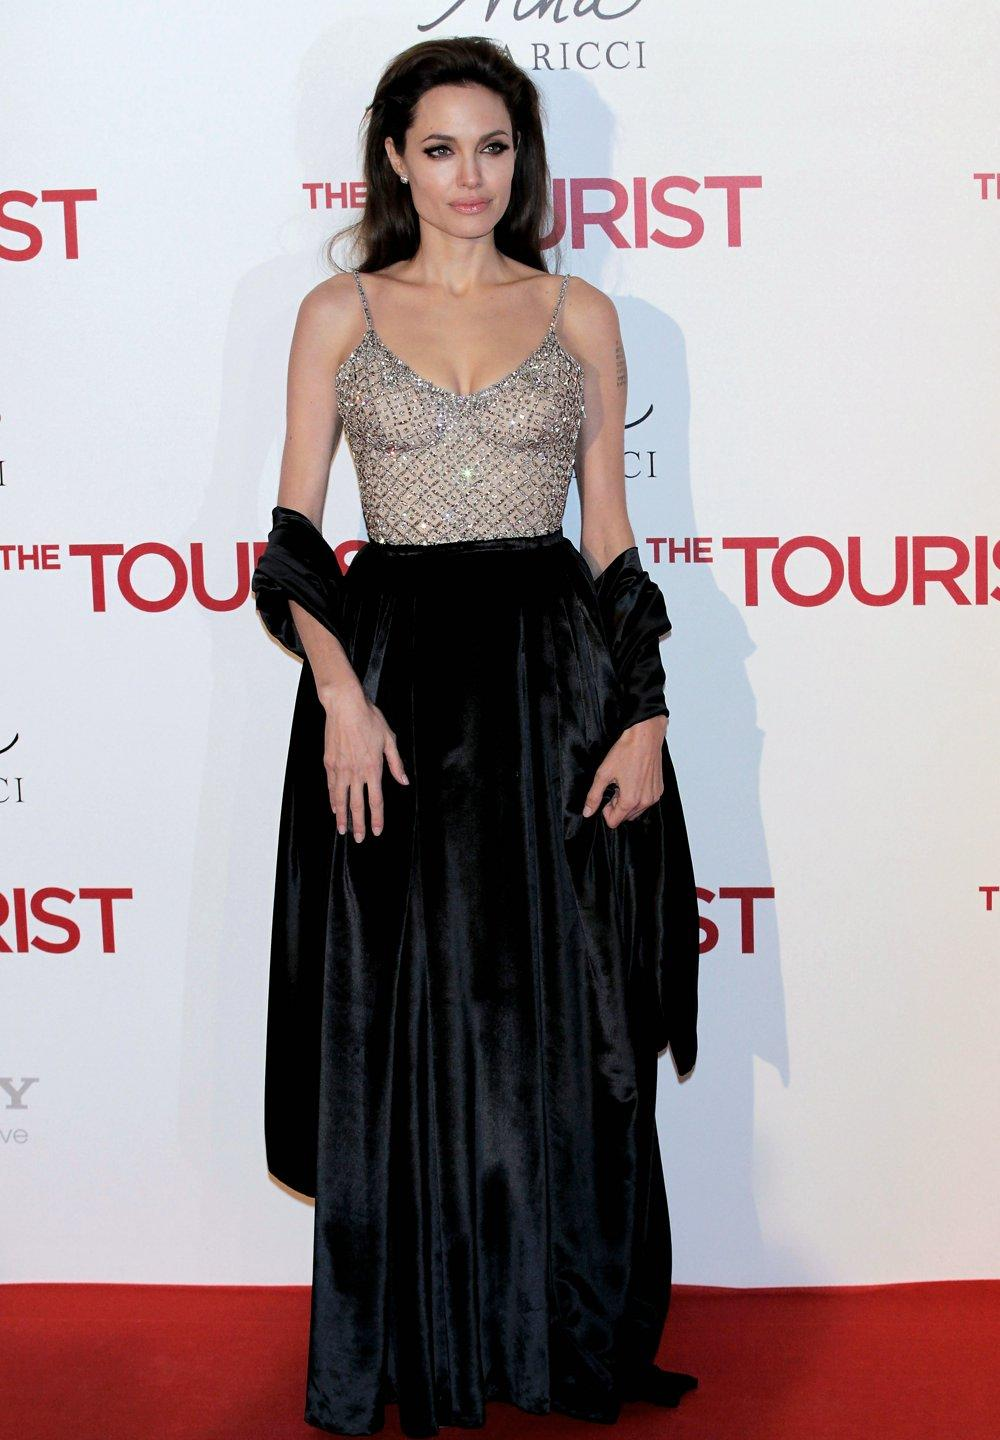 Angelina jolie red carpet dresses - photo#10